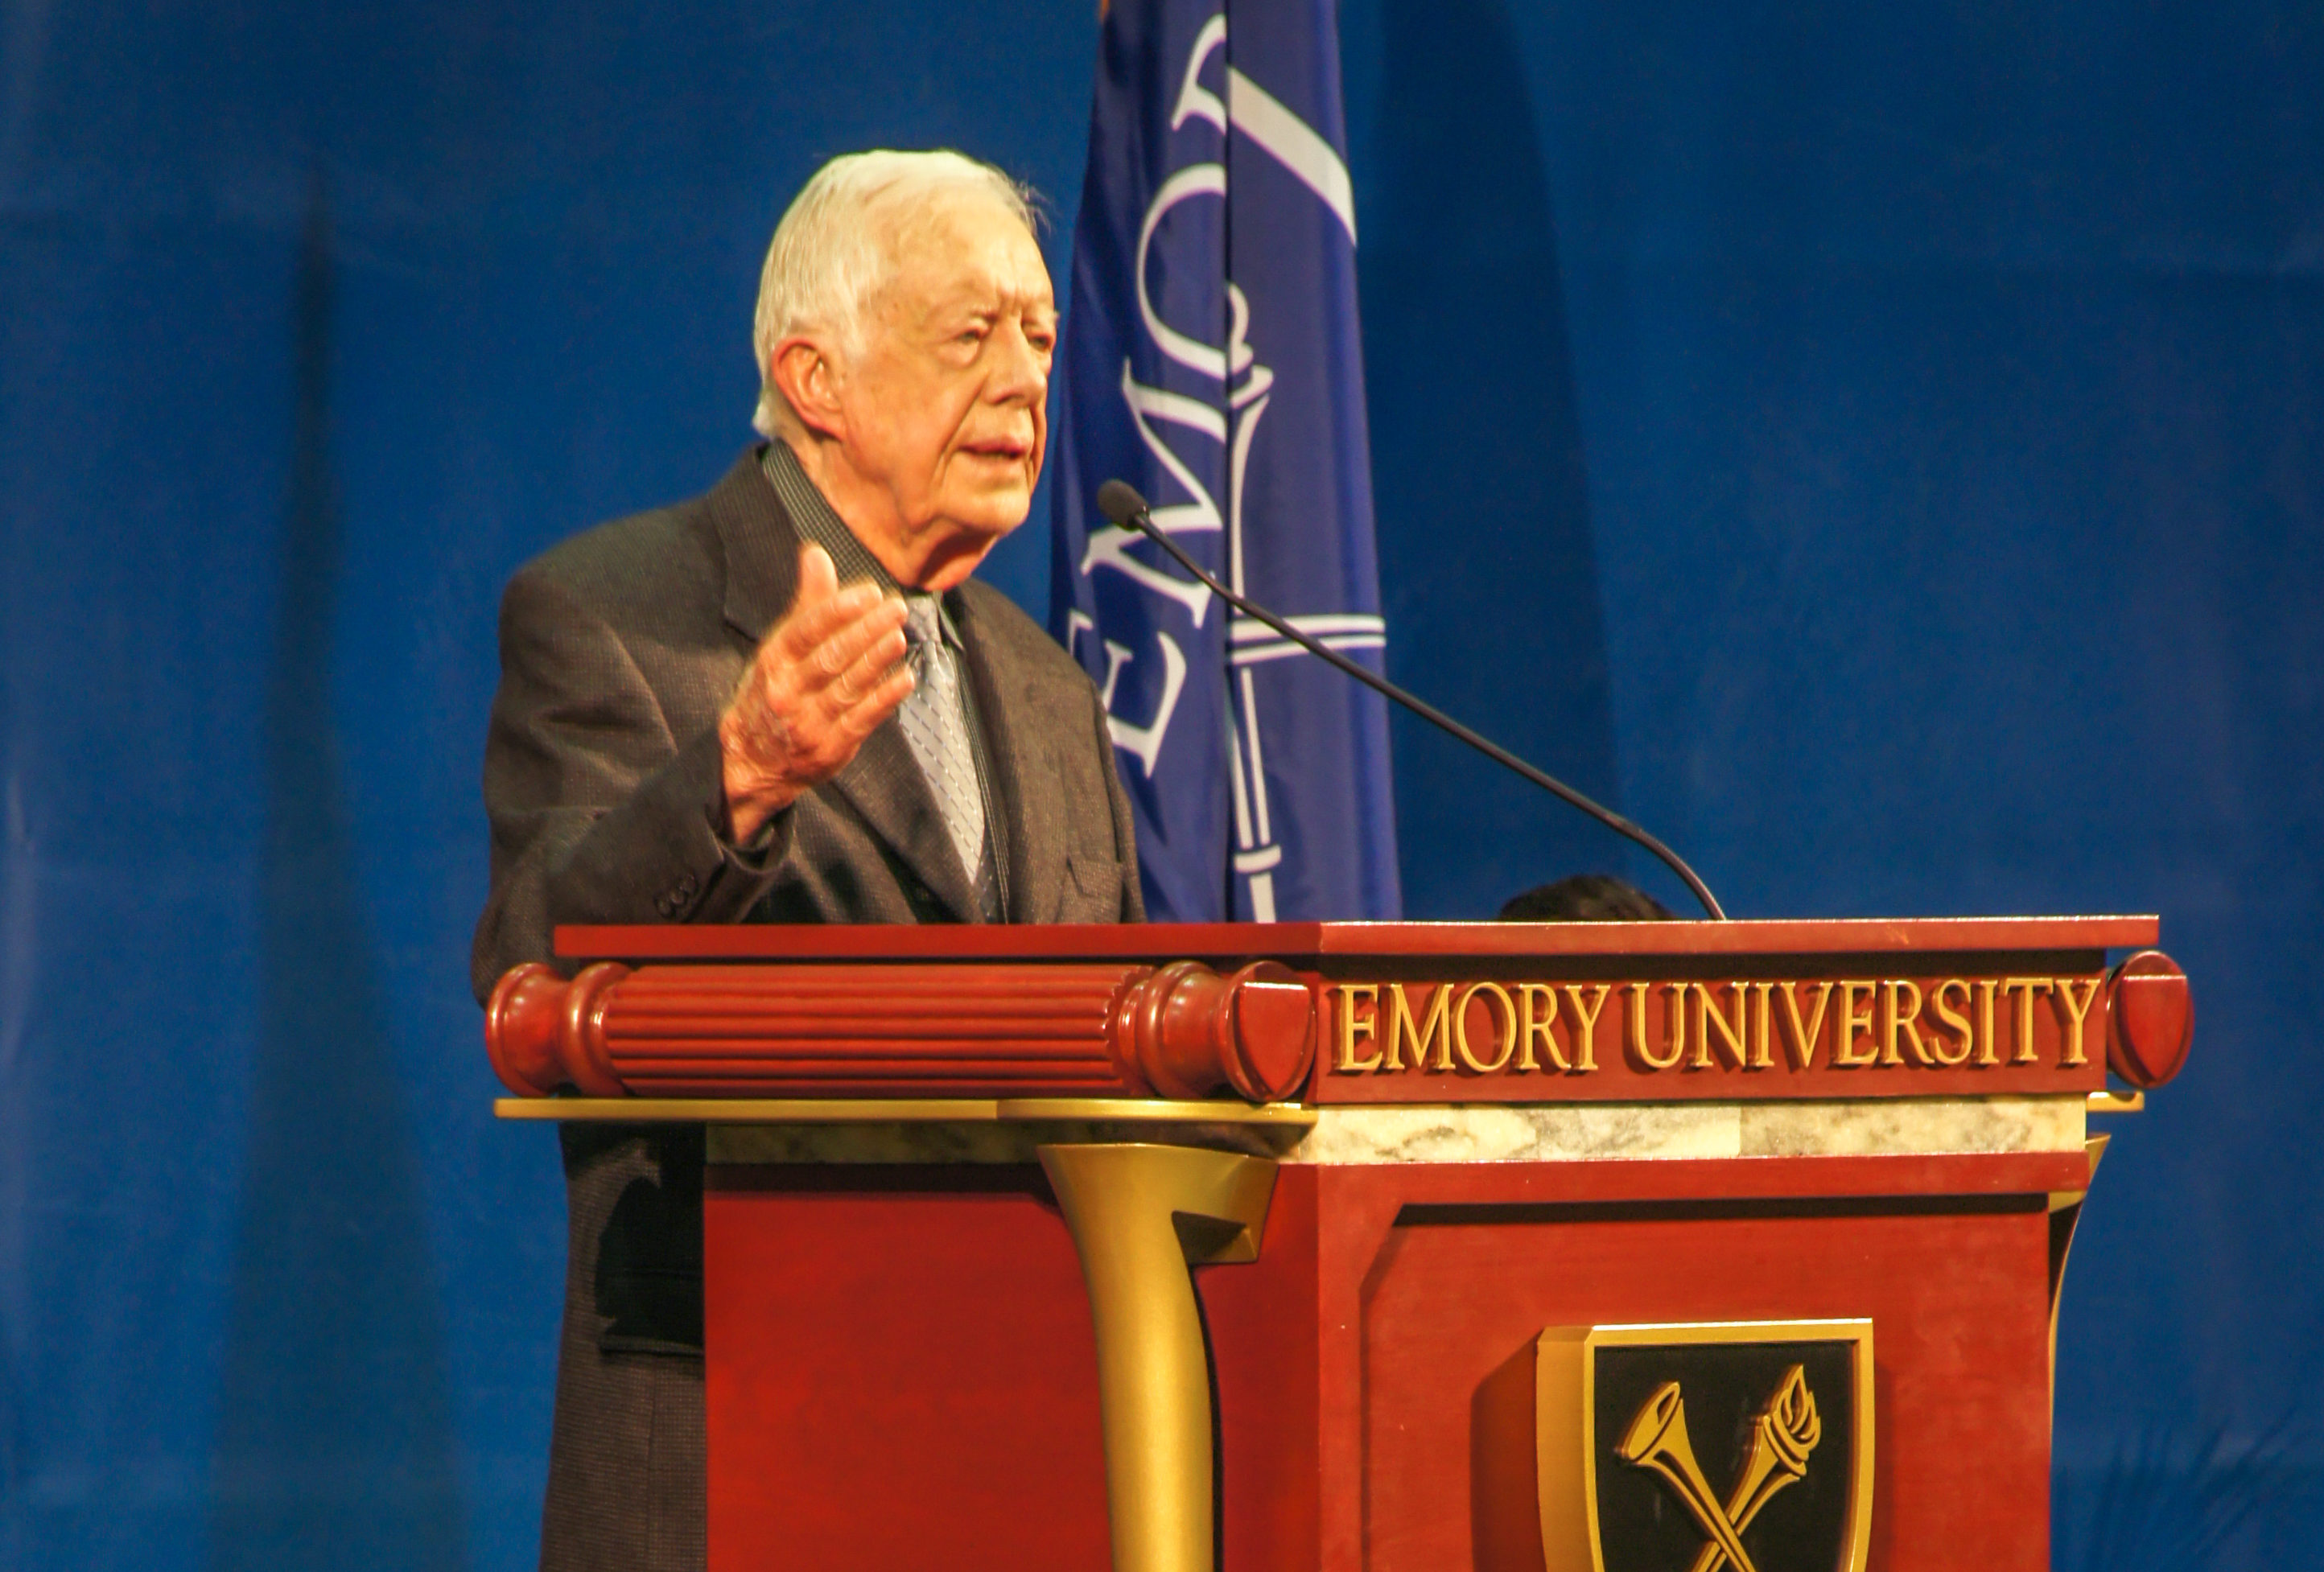 Former U.S. President and Emory Distinguished Professor Jimmy Carter takes the stage at his annual Emory town hall to discuss gender discrimination and his hopes for the election season.